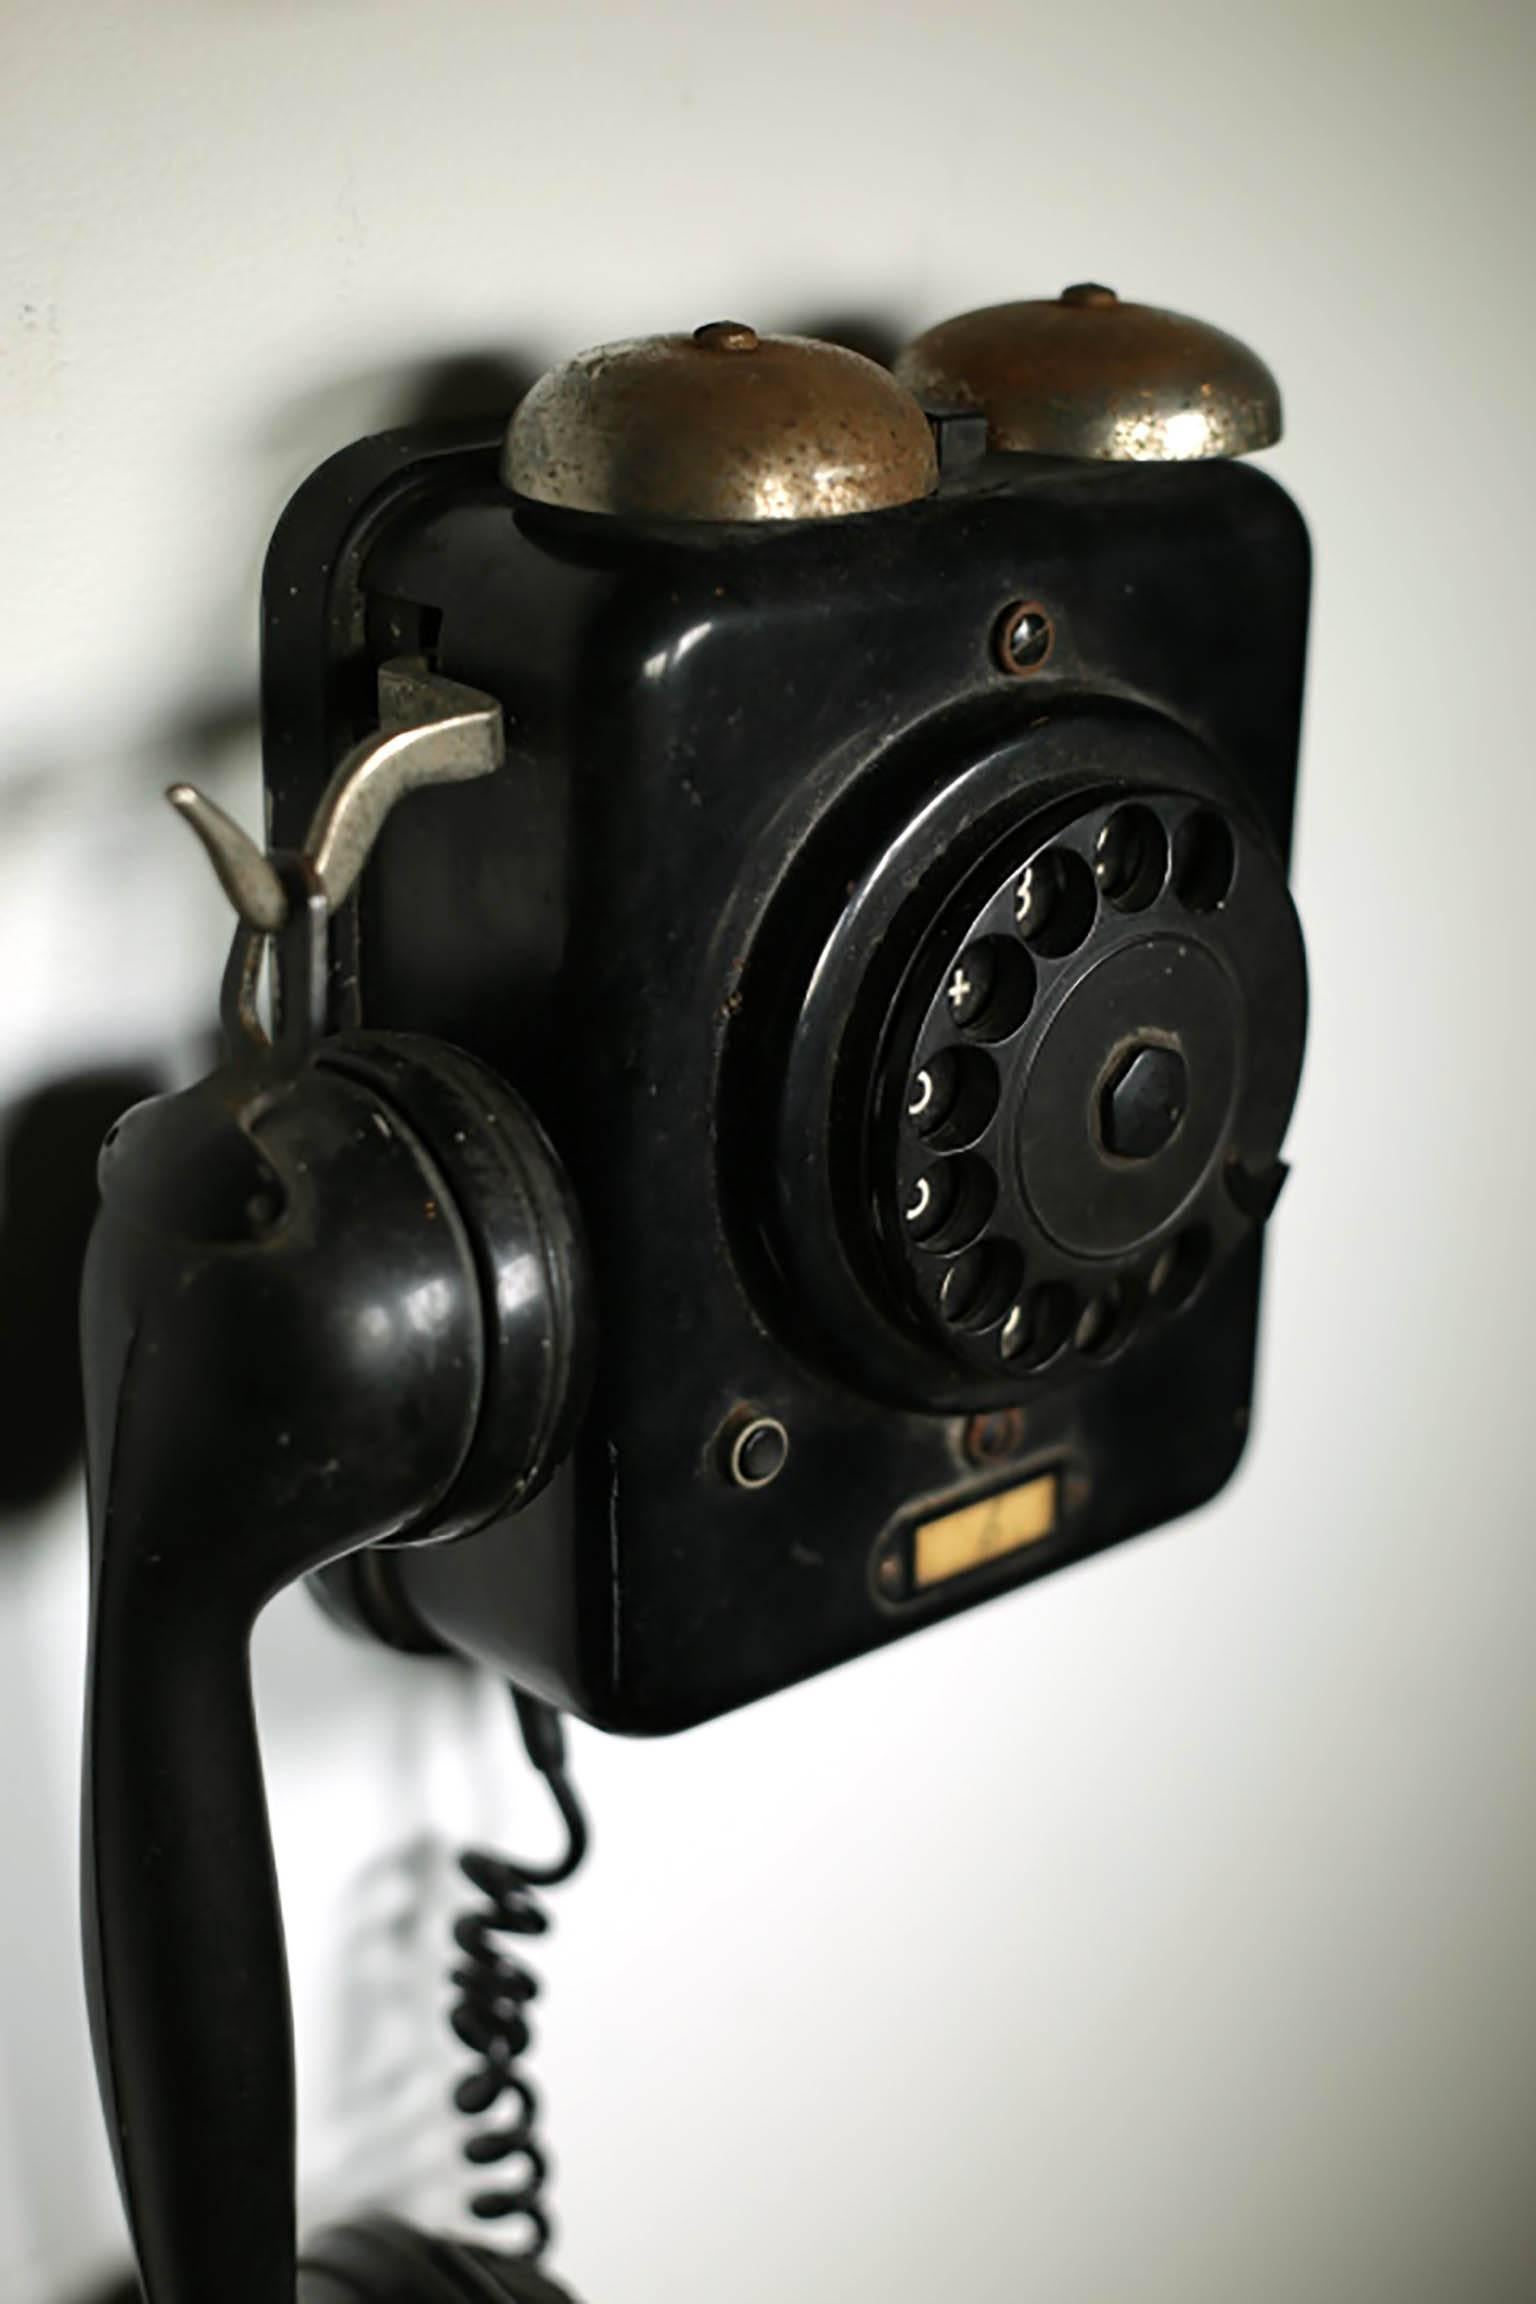 hight resolution of metal body with a bakelite rotary dial telephone circa 1950s might possible work if